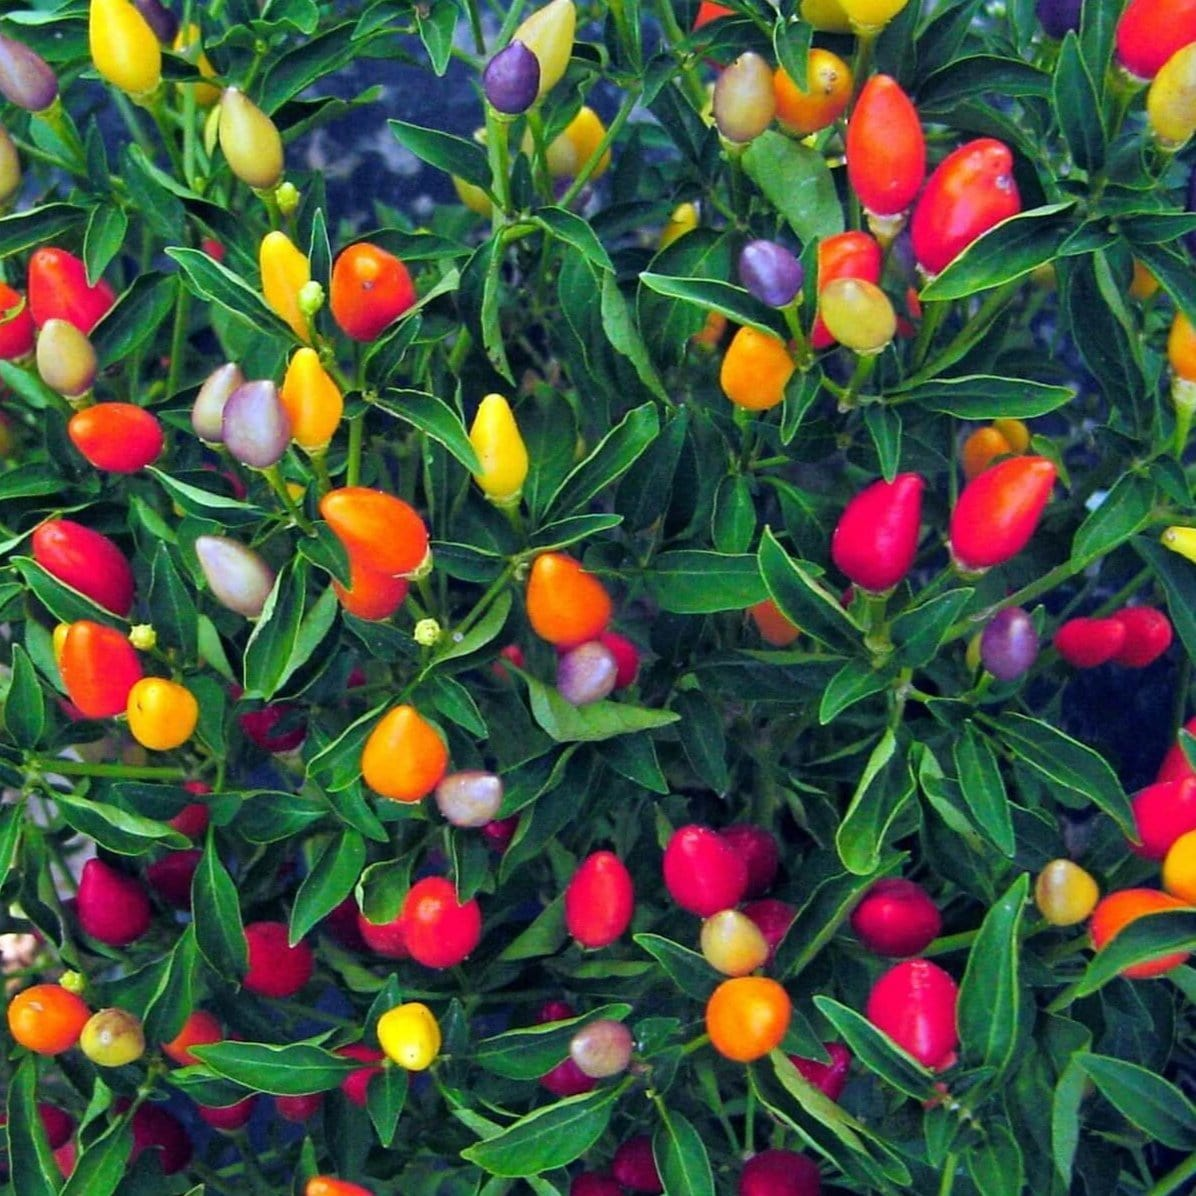 chinese 5 color pepper scoville varies, ranging from 5,000 to 50,000